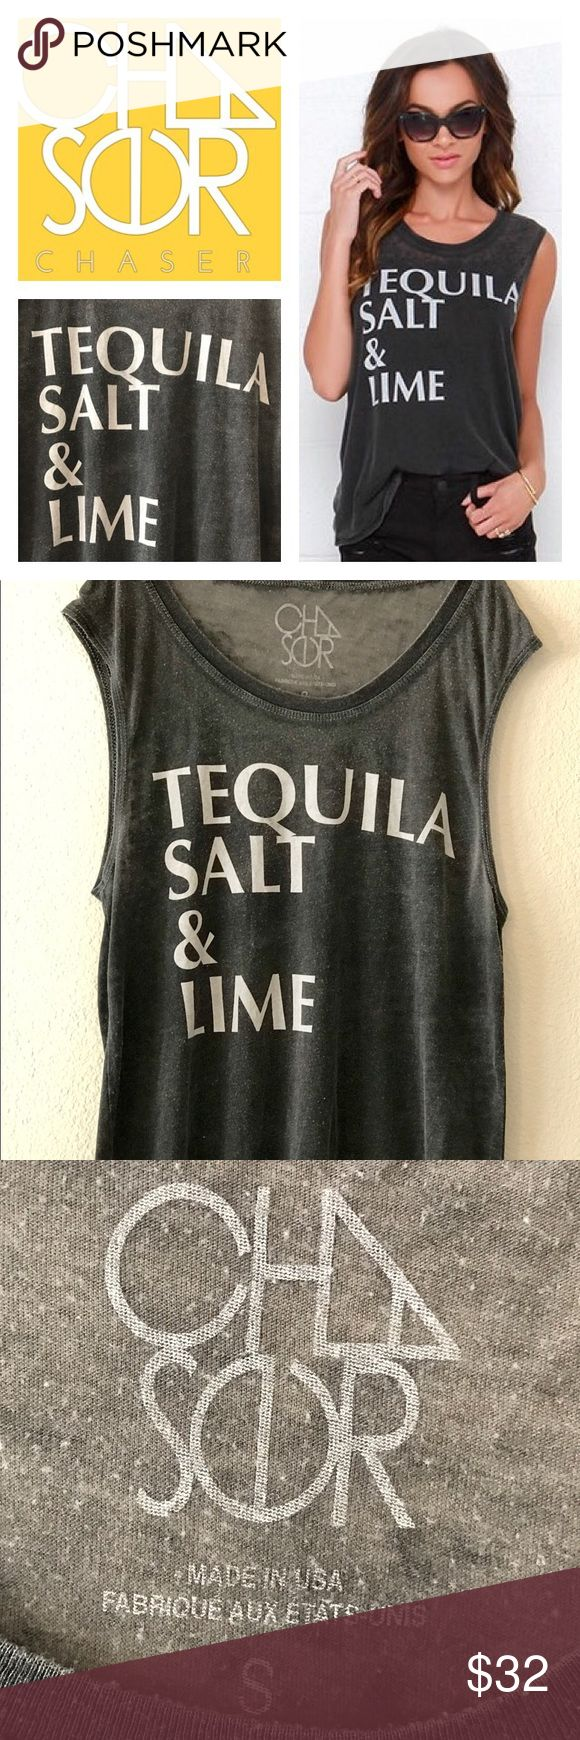 "CHASER BRAND-TEQUILA SALT & LIME WASHED BLACK TOP Excellent Condition. Worn handful of times. CHASER BRAND- washed black burnout tee is ultra soft and lightweight across a crew neckline with muscle-cut sleeves and a straight-cut bodice. ""Tequila Salt & Lime"" is printed in bold washed ivory text across the front. Size Small. Chaser Tops Tank Tops"